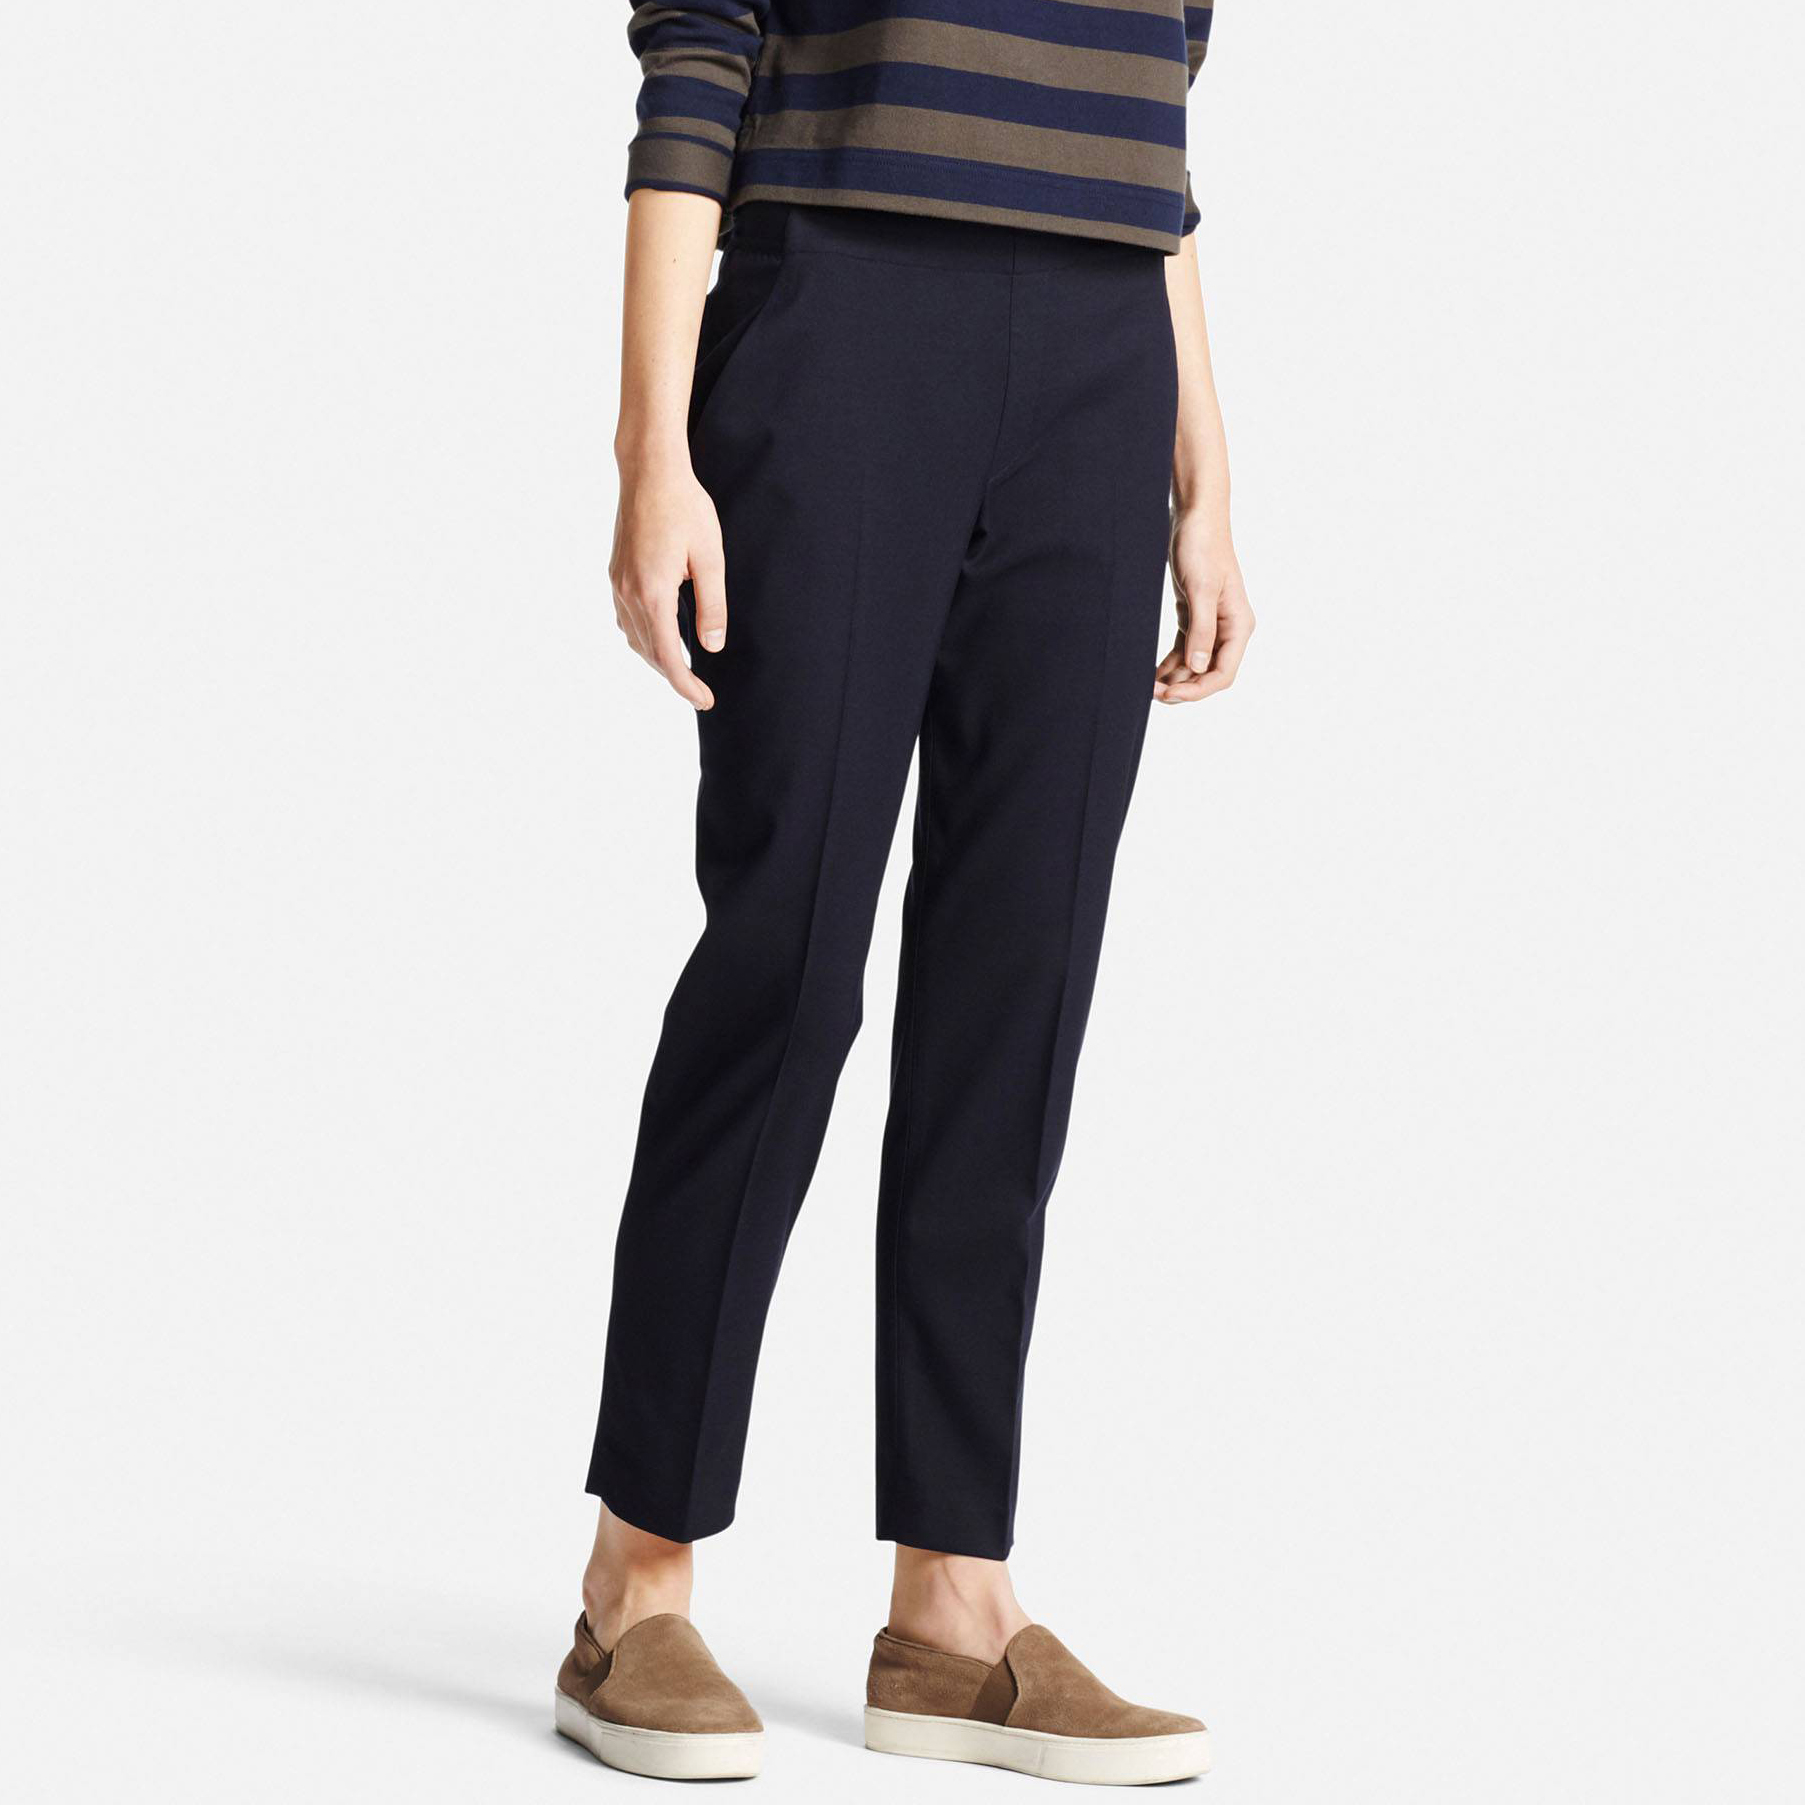 Uniqlo ankle pants